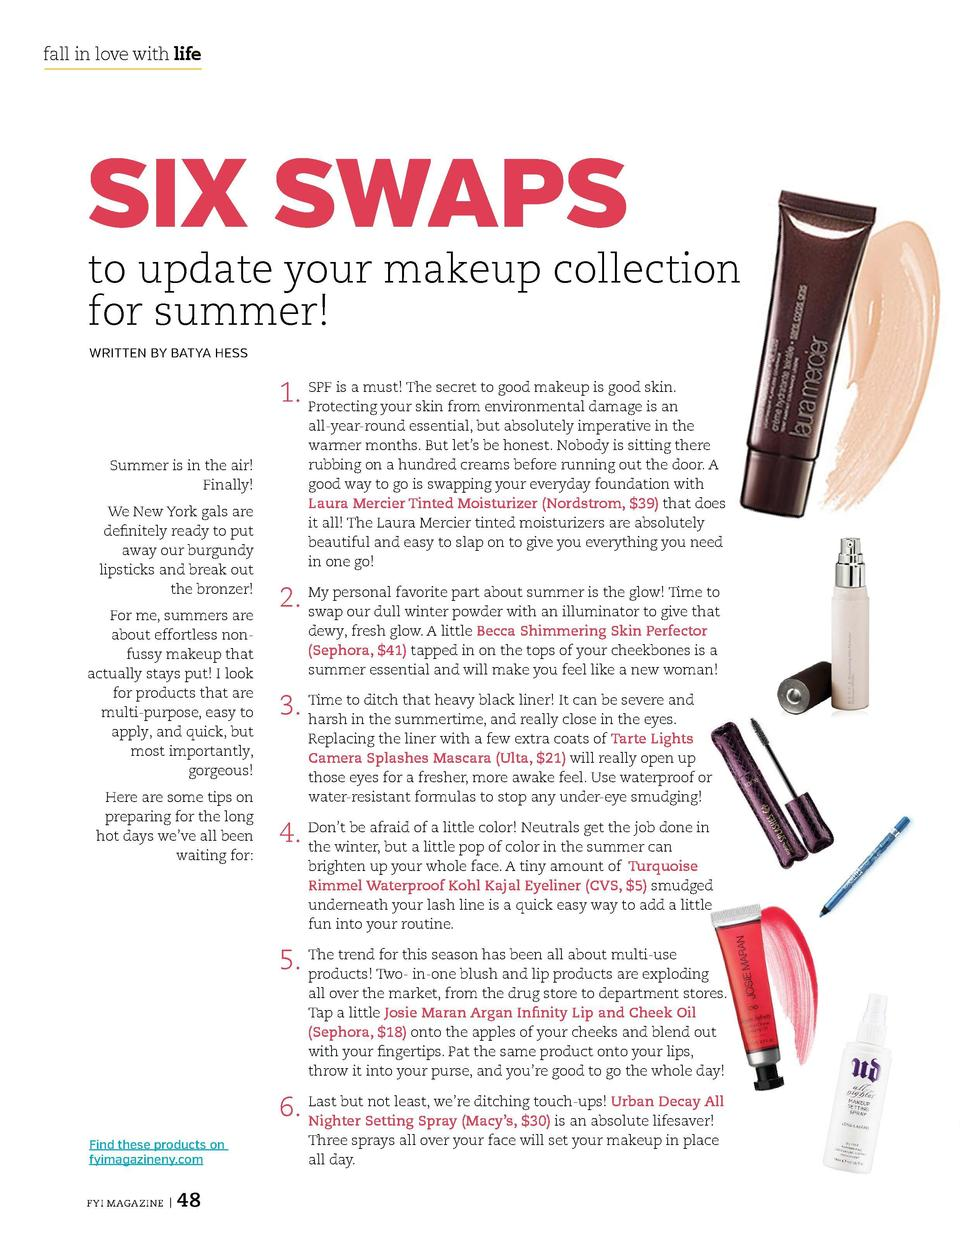 fall in love with life  fall in love with life  SIX SWAPS  to update your makeup collection for summer  WRITTEN BY BATYA H...